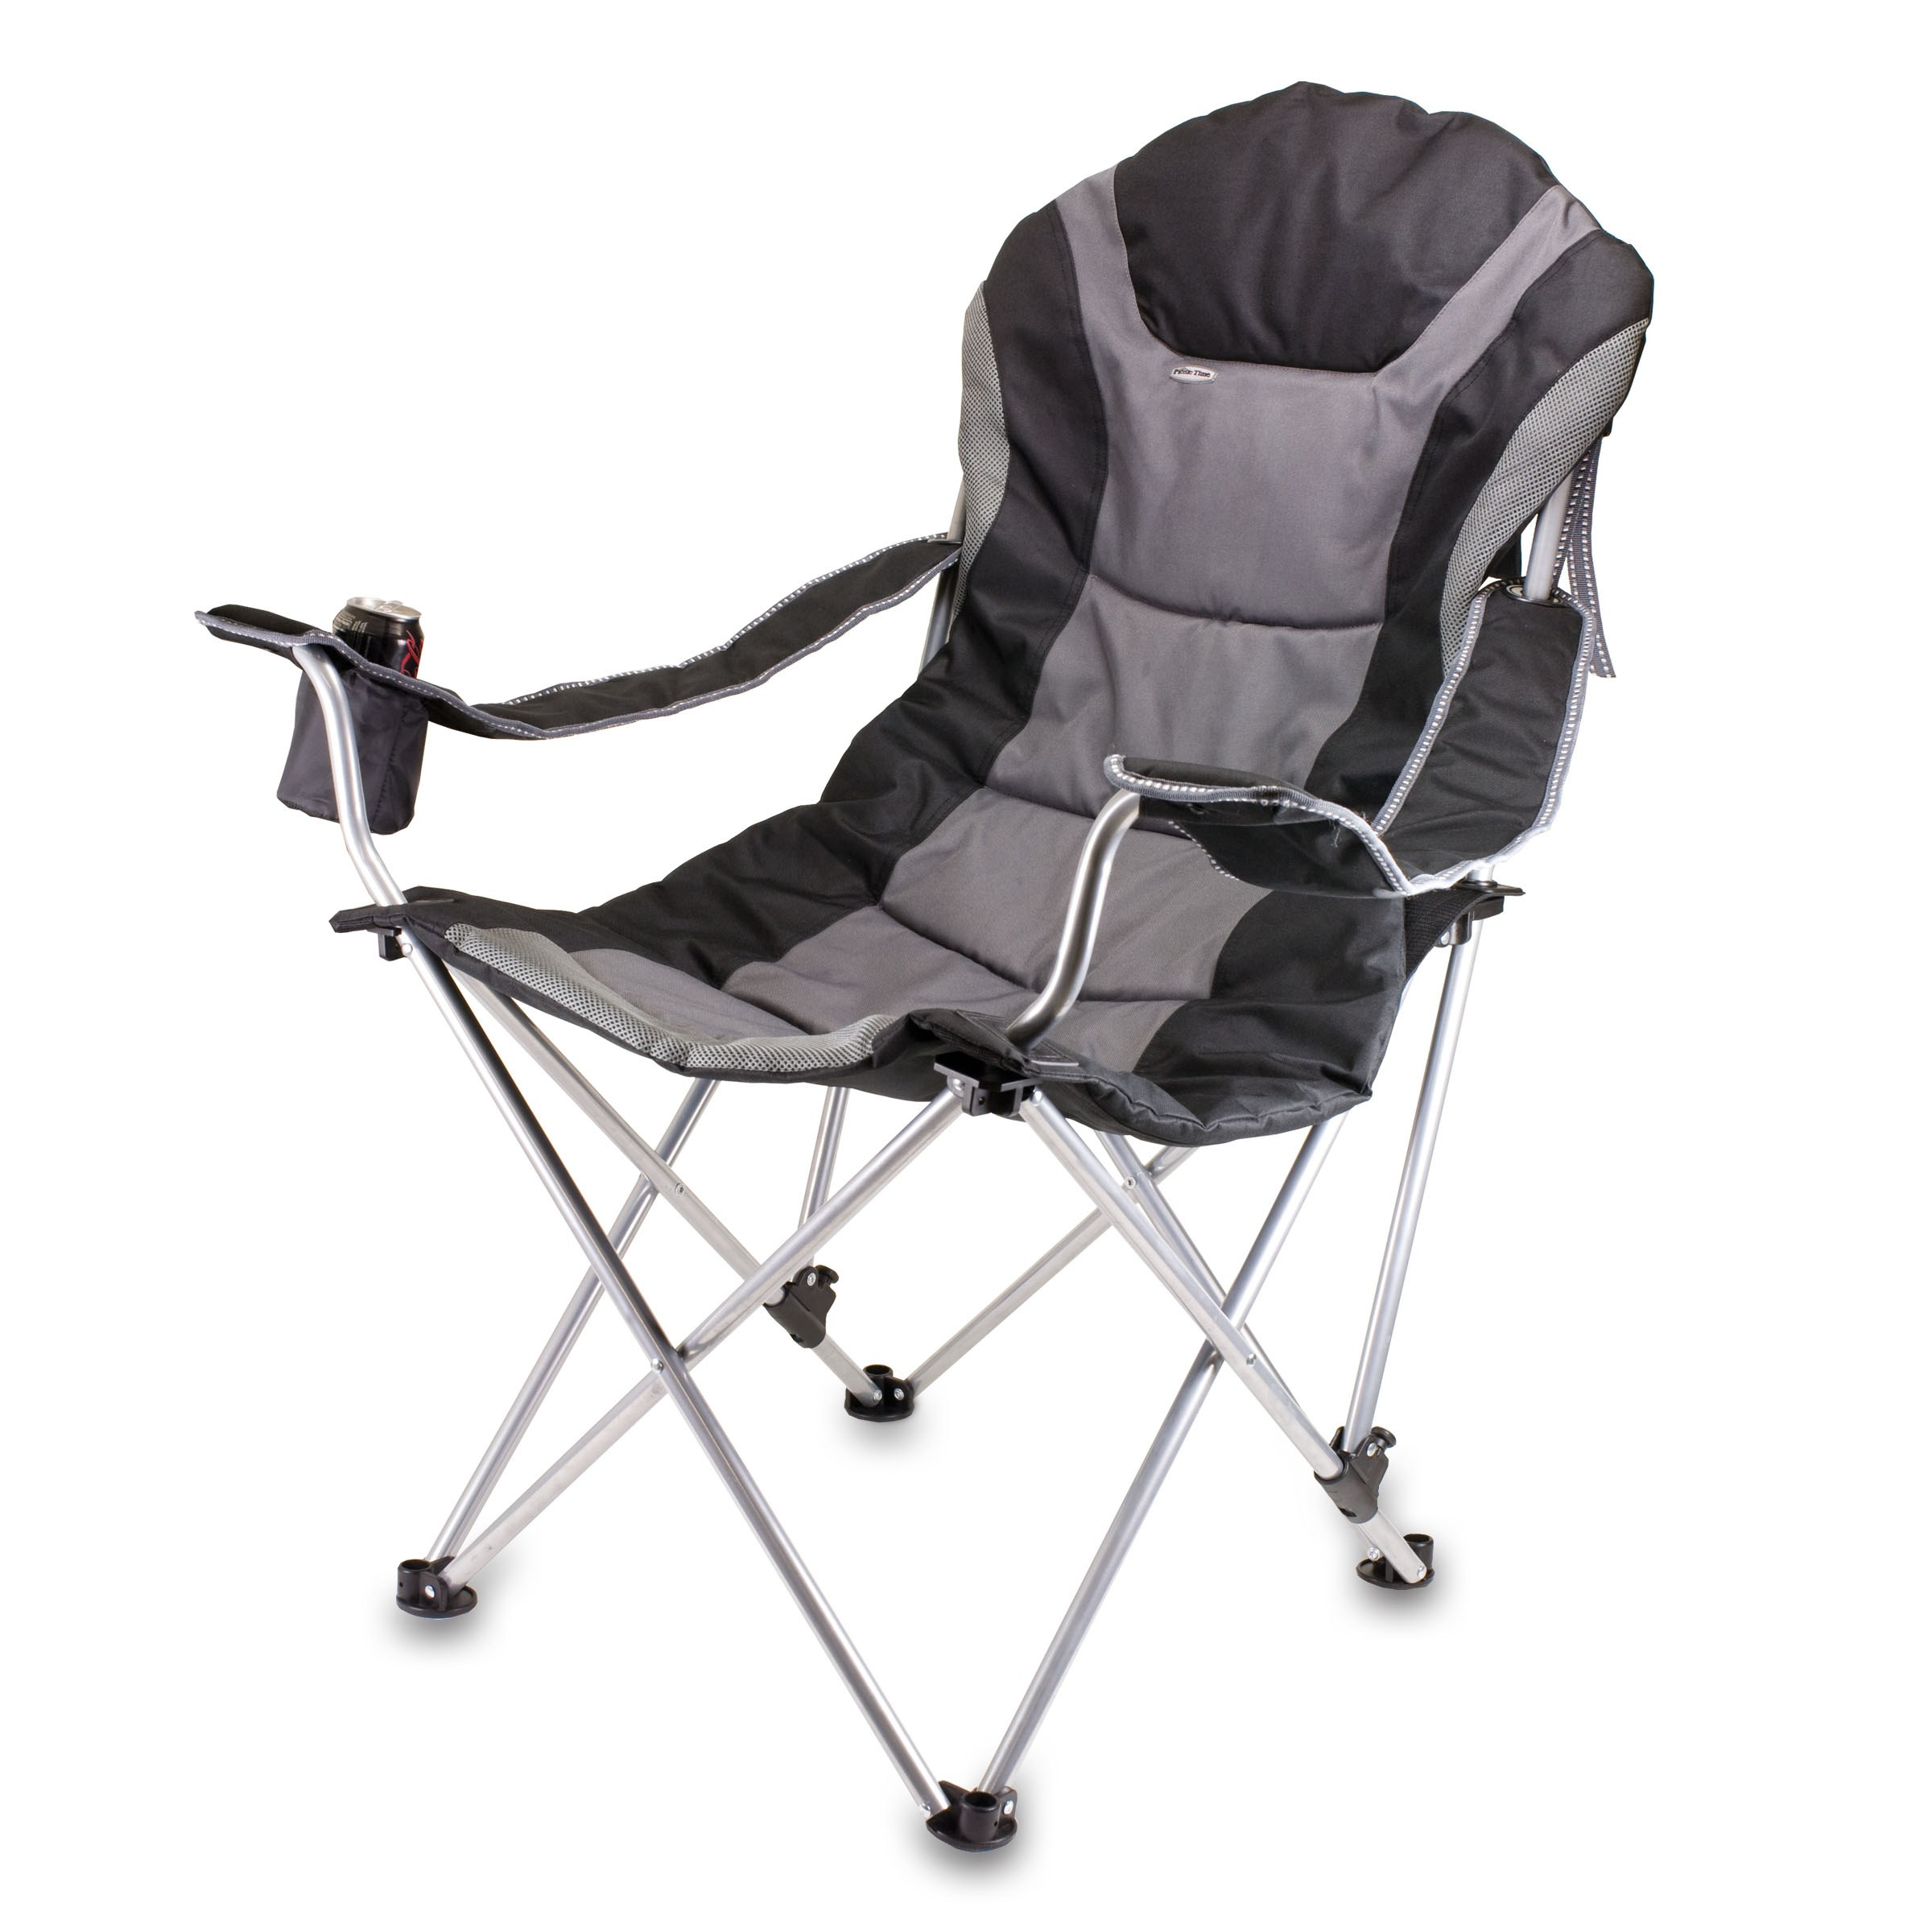 Reclining Camp Chair Black/grey